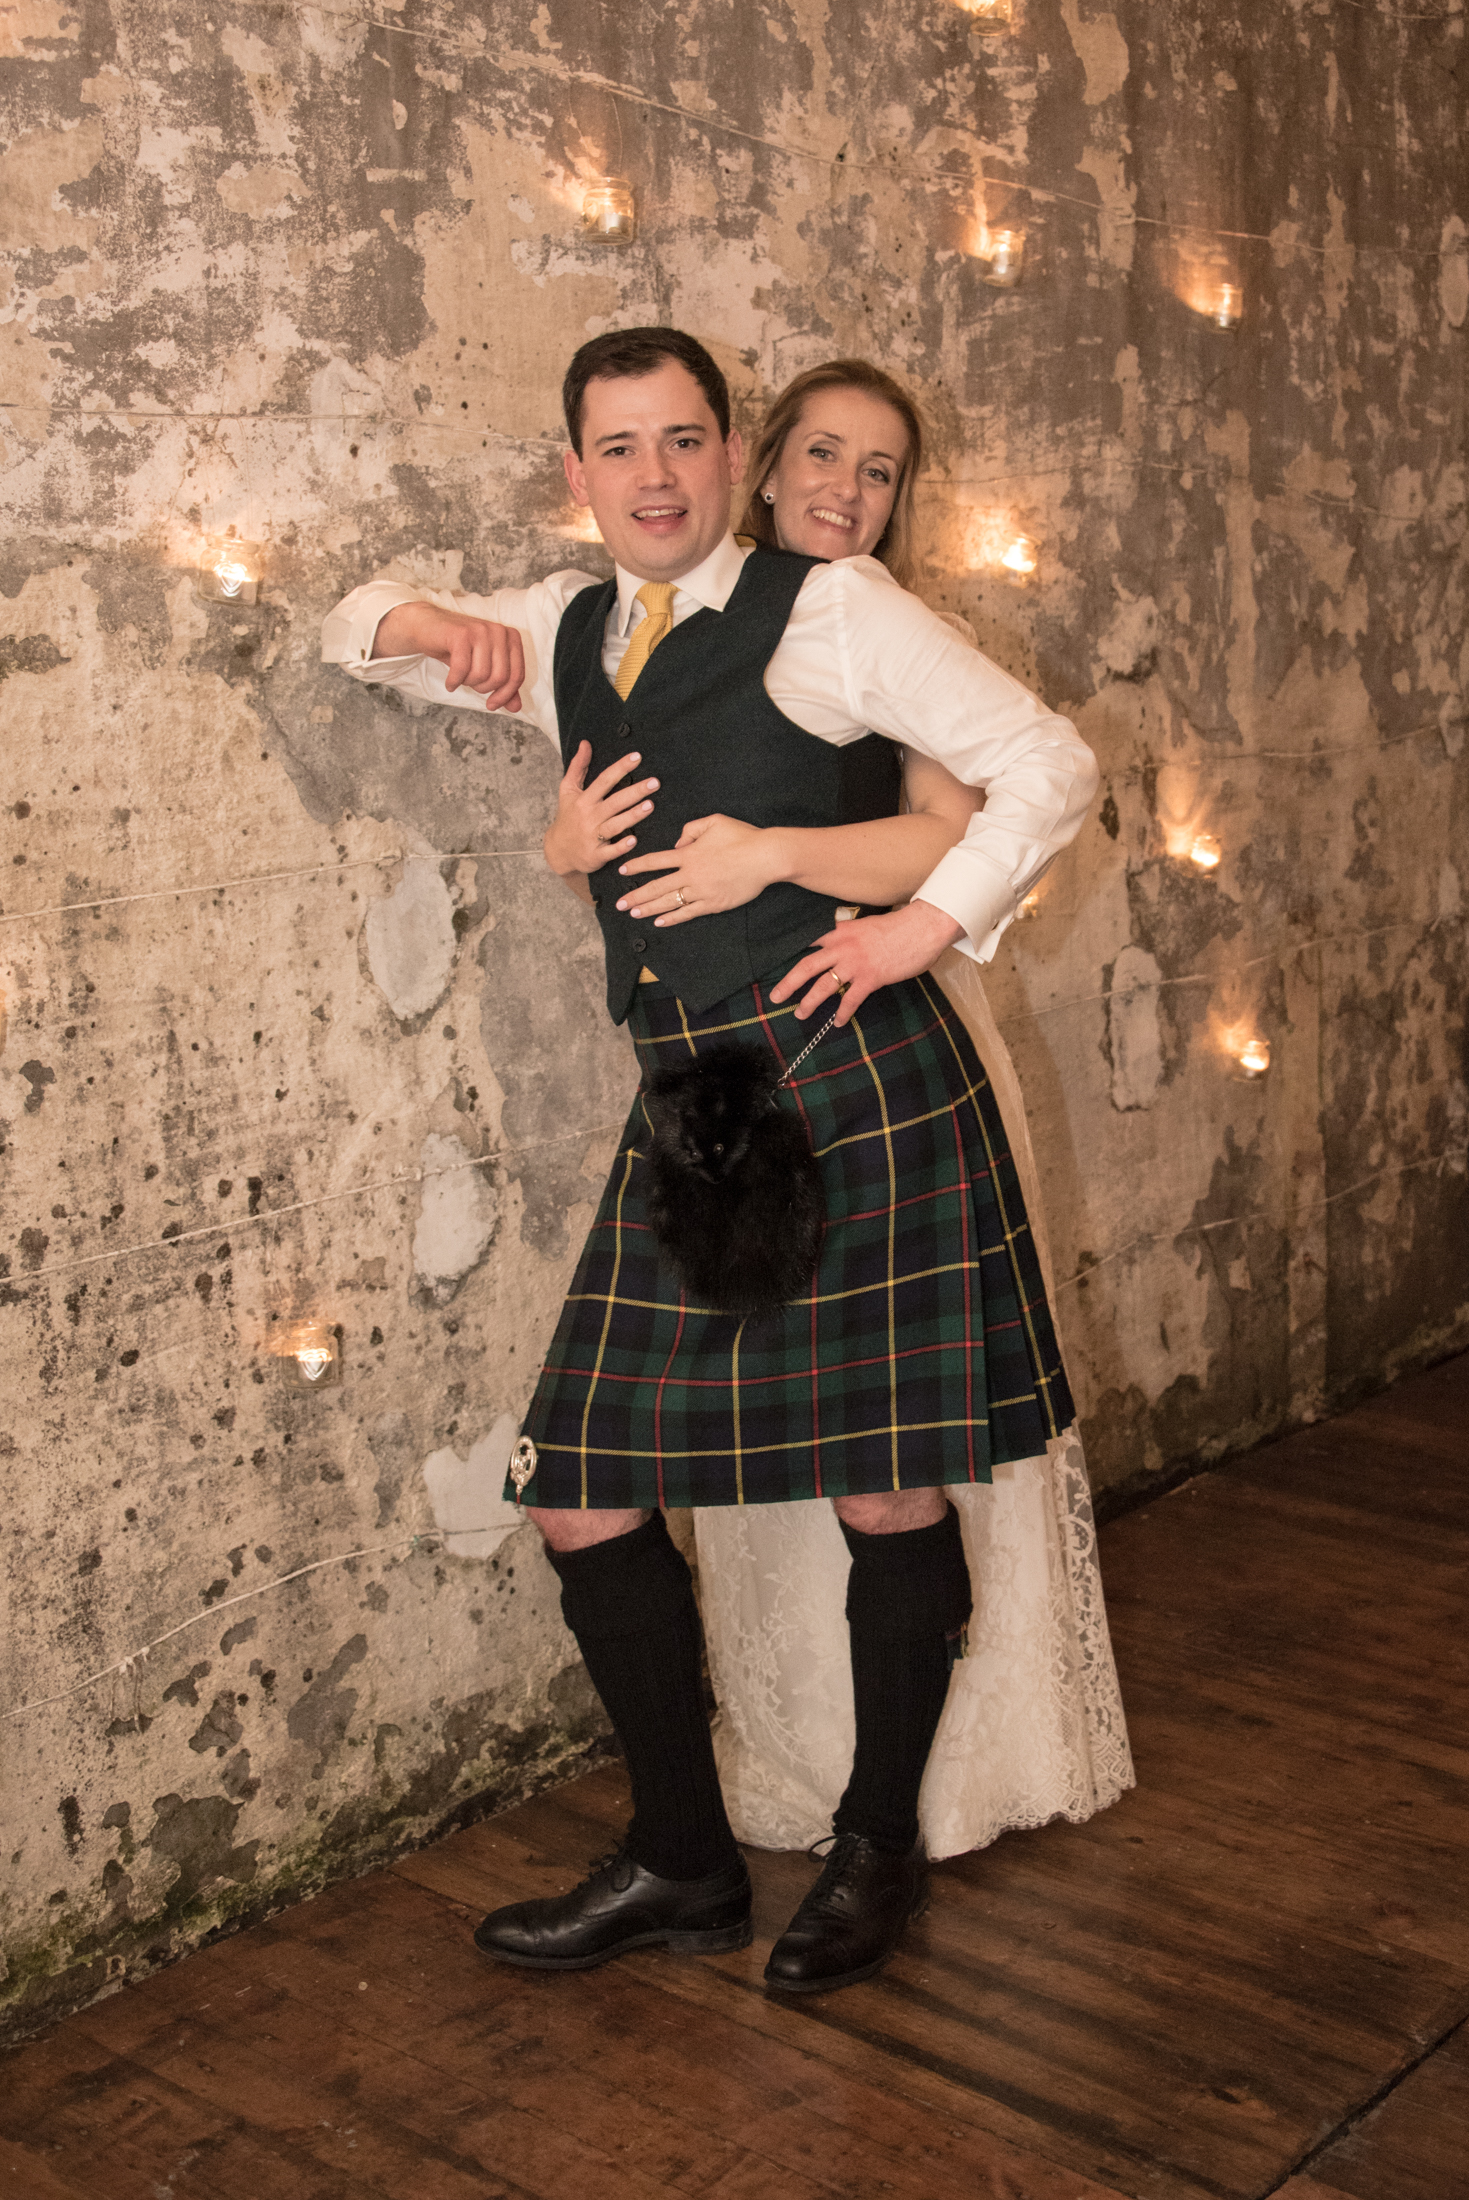 2016-04-02 SIONED AND NEIL FALKLAND MYRES CASTLE204600.jpg